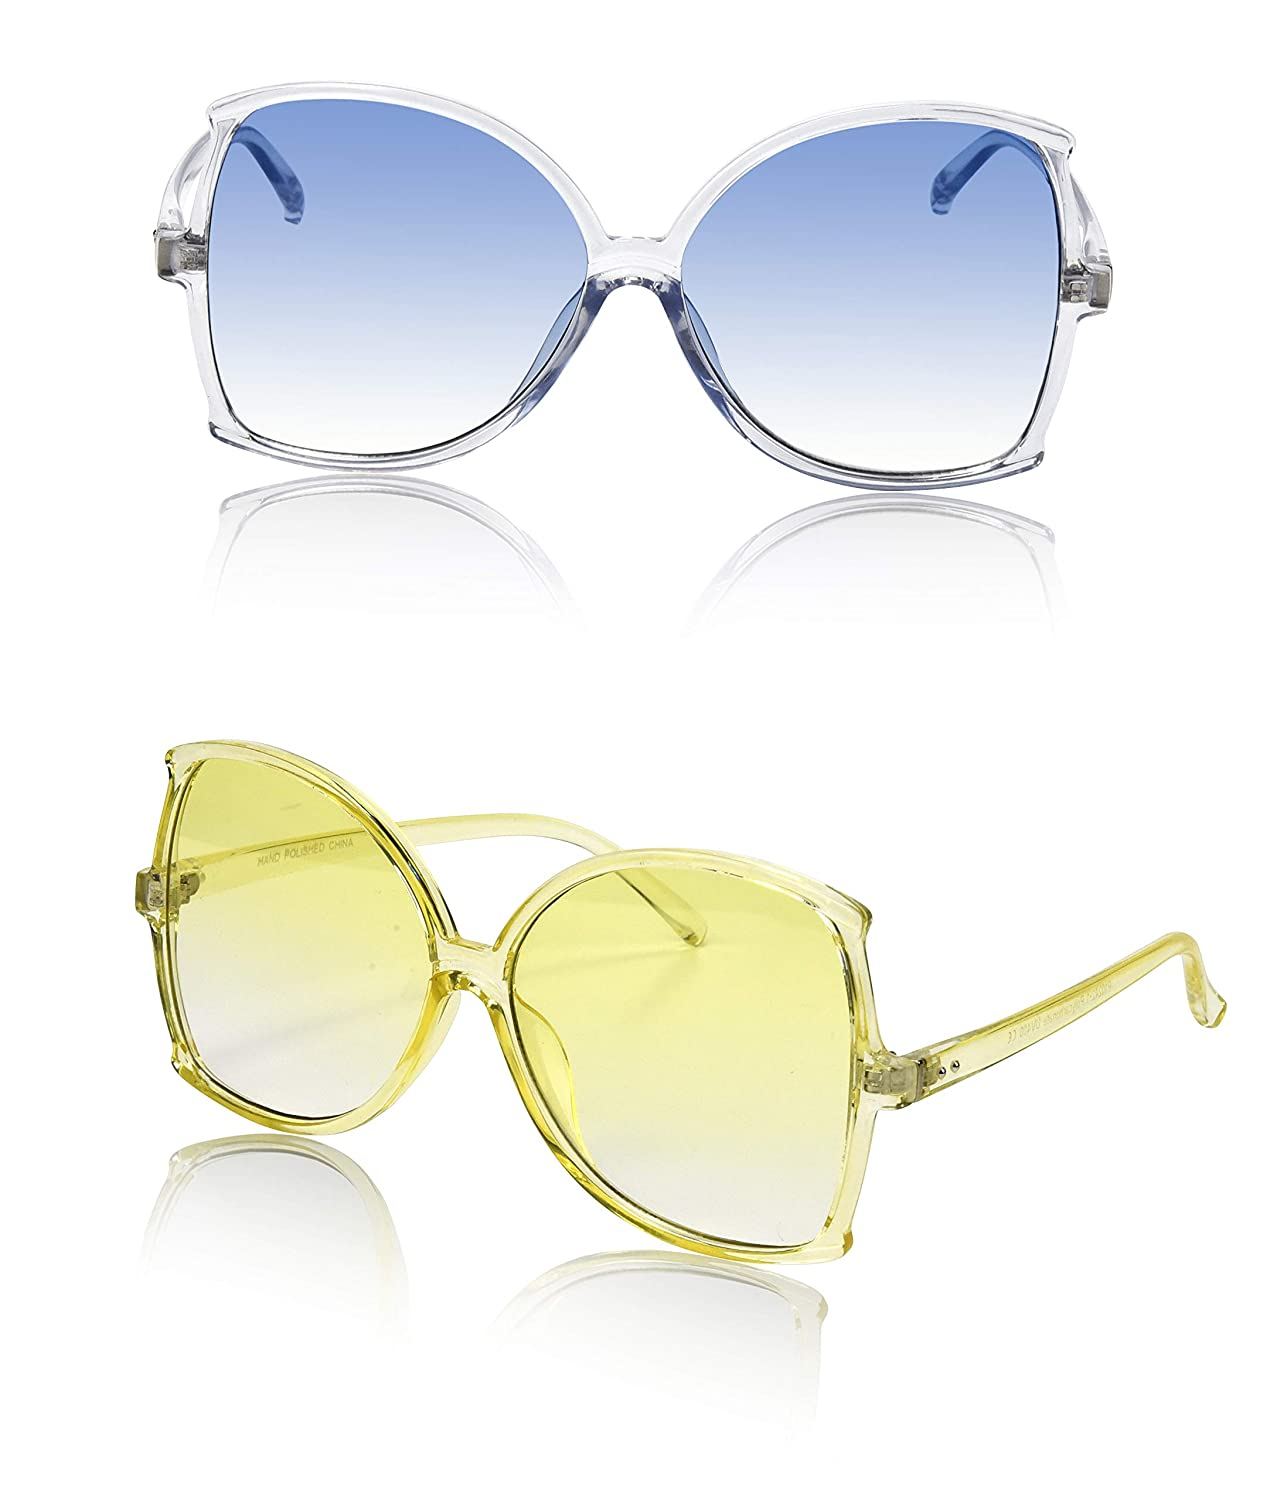 af995a49afa4f Amazon.com  Cool Oversize Colorful Women s Sunglasses Disco Two Bulk Chic  Yellow Blue Tinted  Clothing